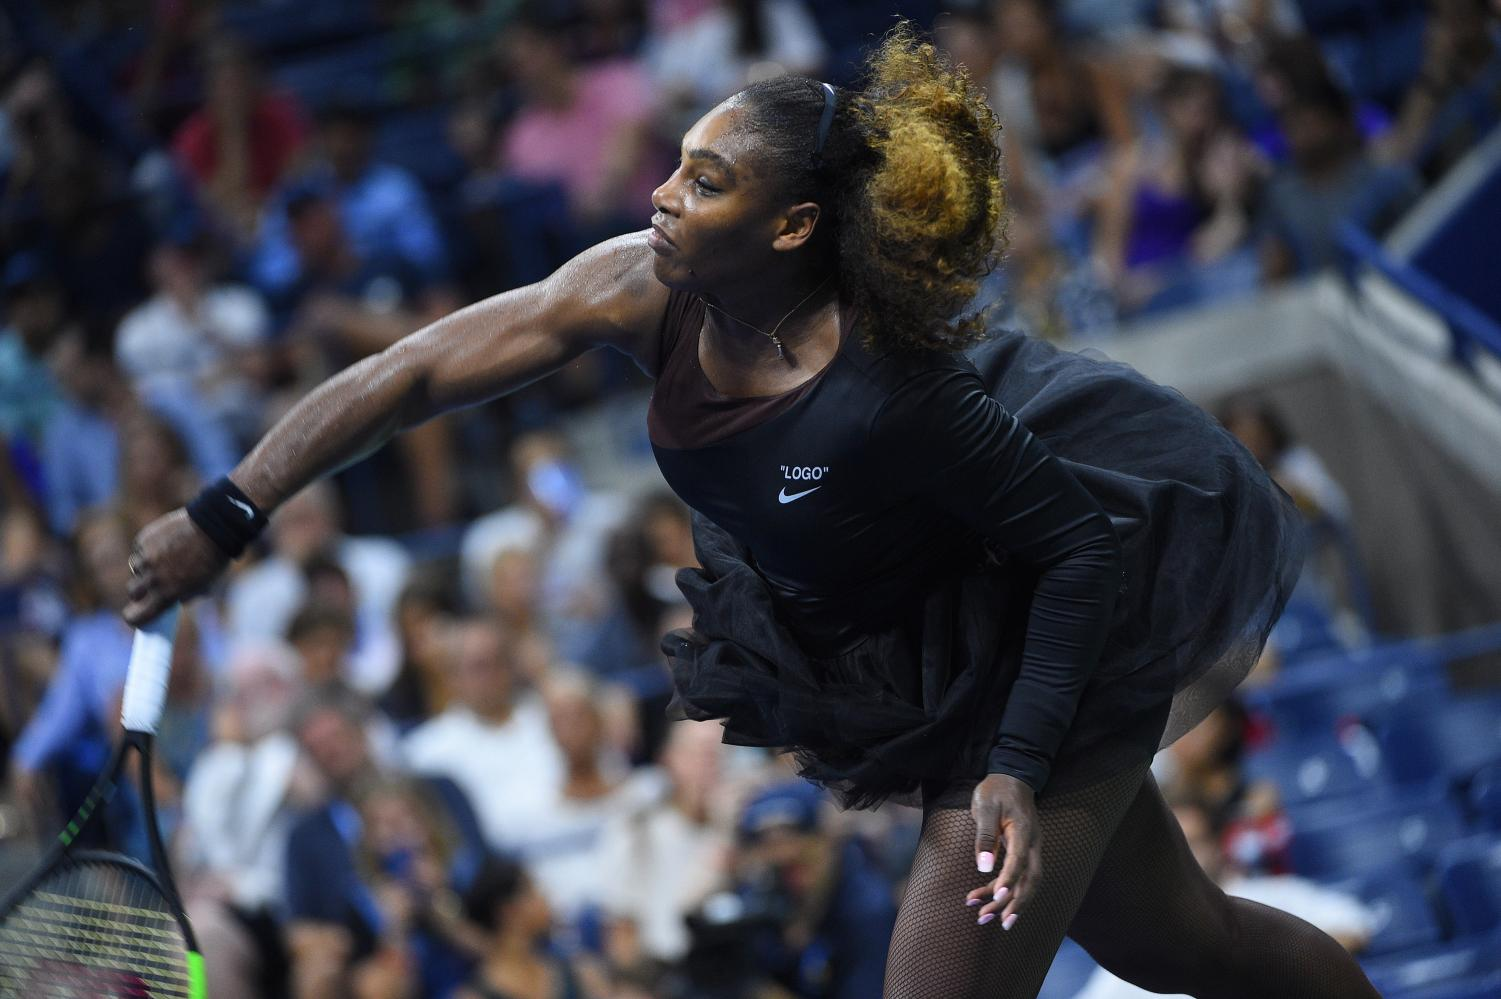 Serena Williams (USA) during her first round at the 2018 U.S. Open at Billie Jean National Tennis Center in New York City on Aug. 27, 2018. (Corinne Dubreuil/Abaca Press/TNS)